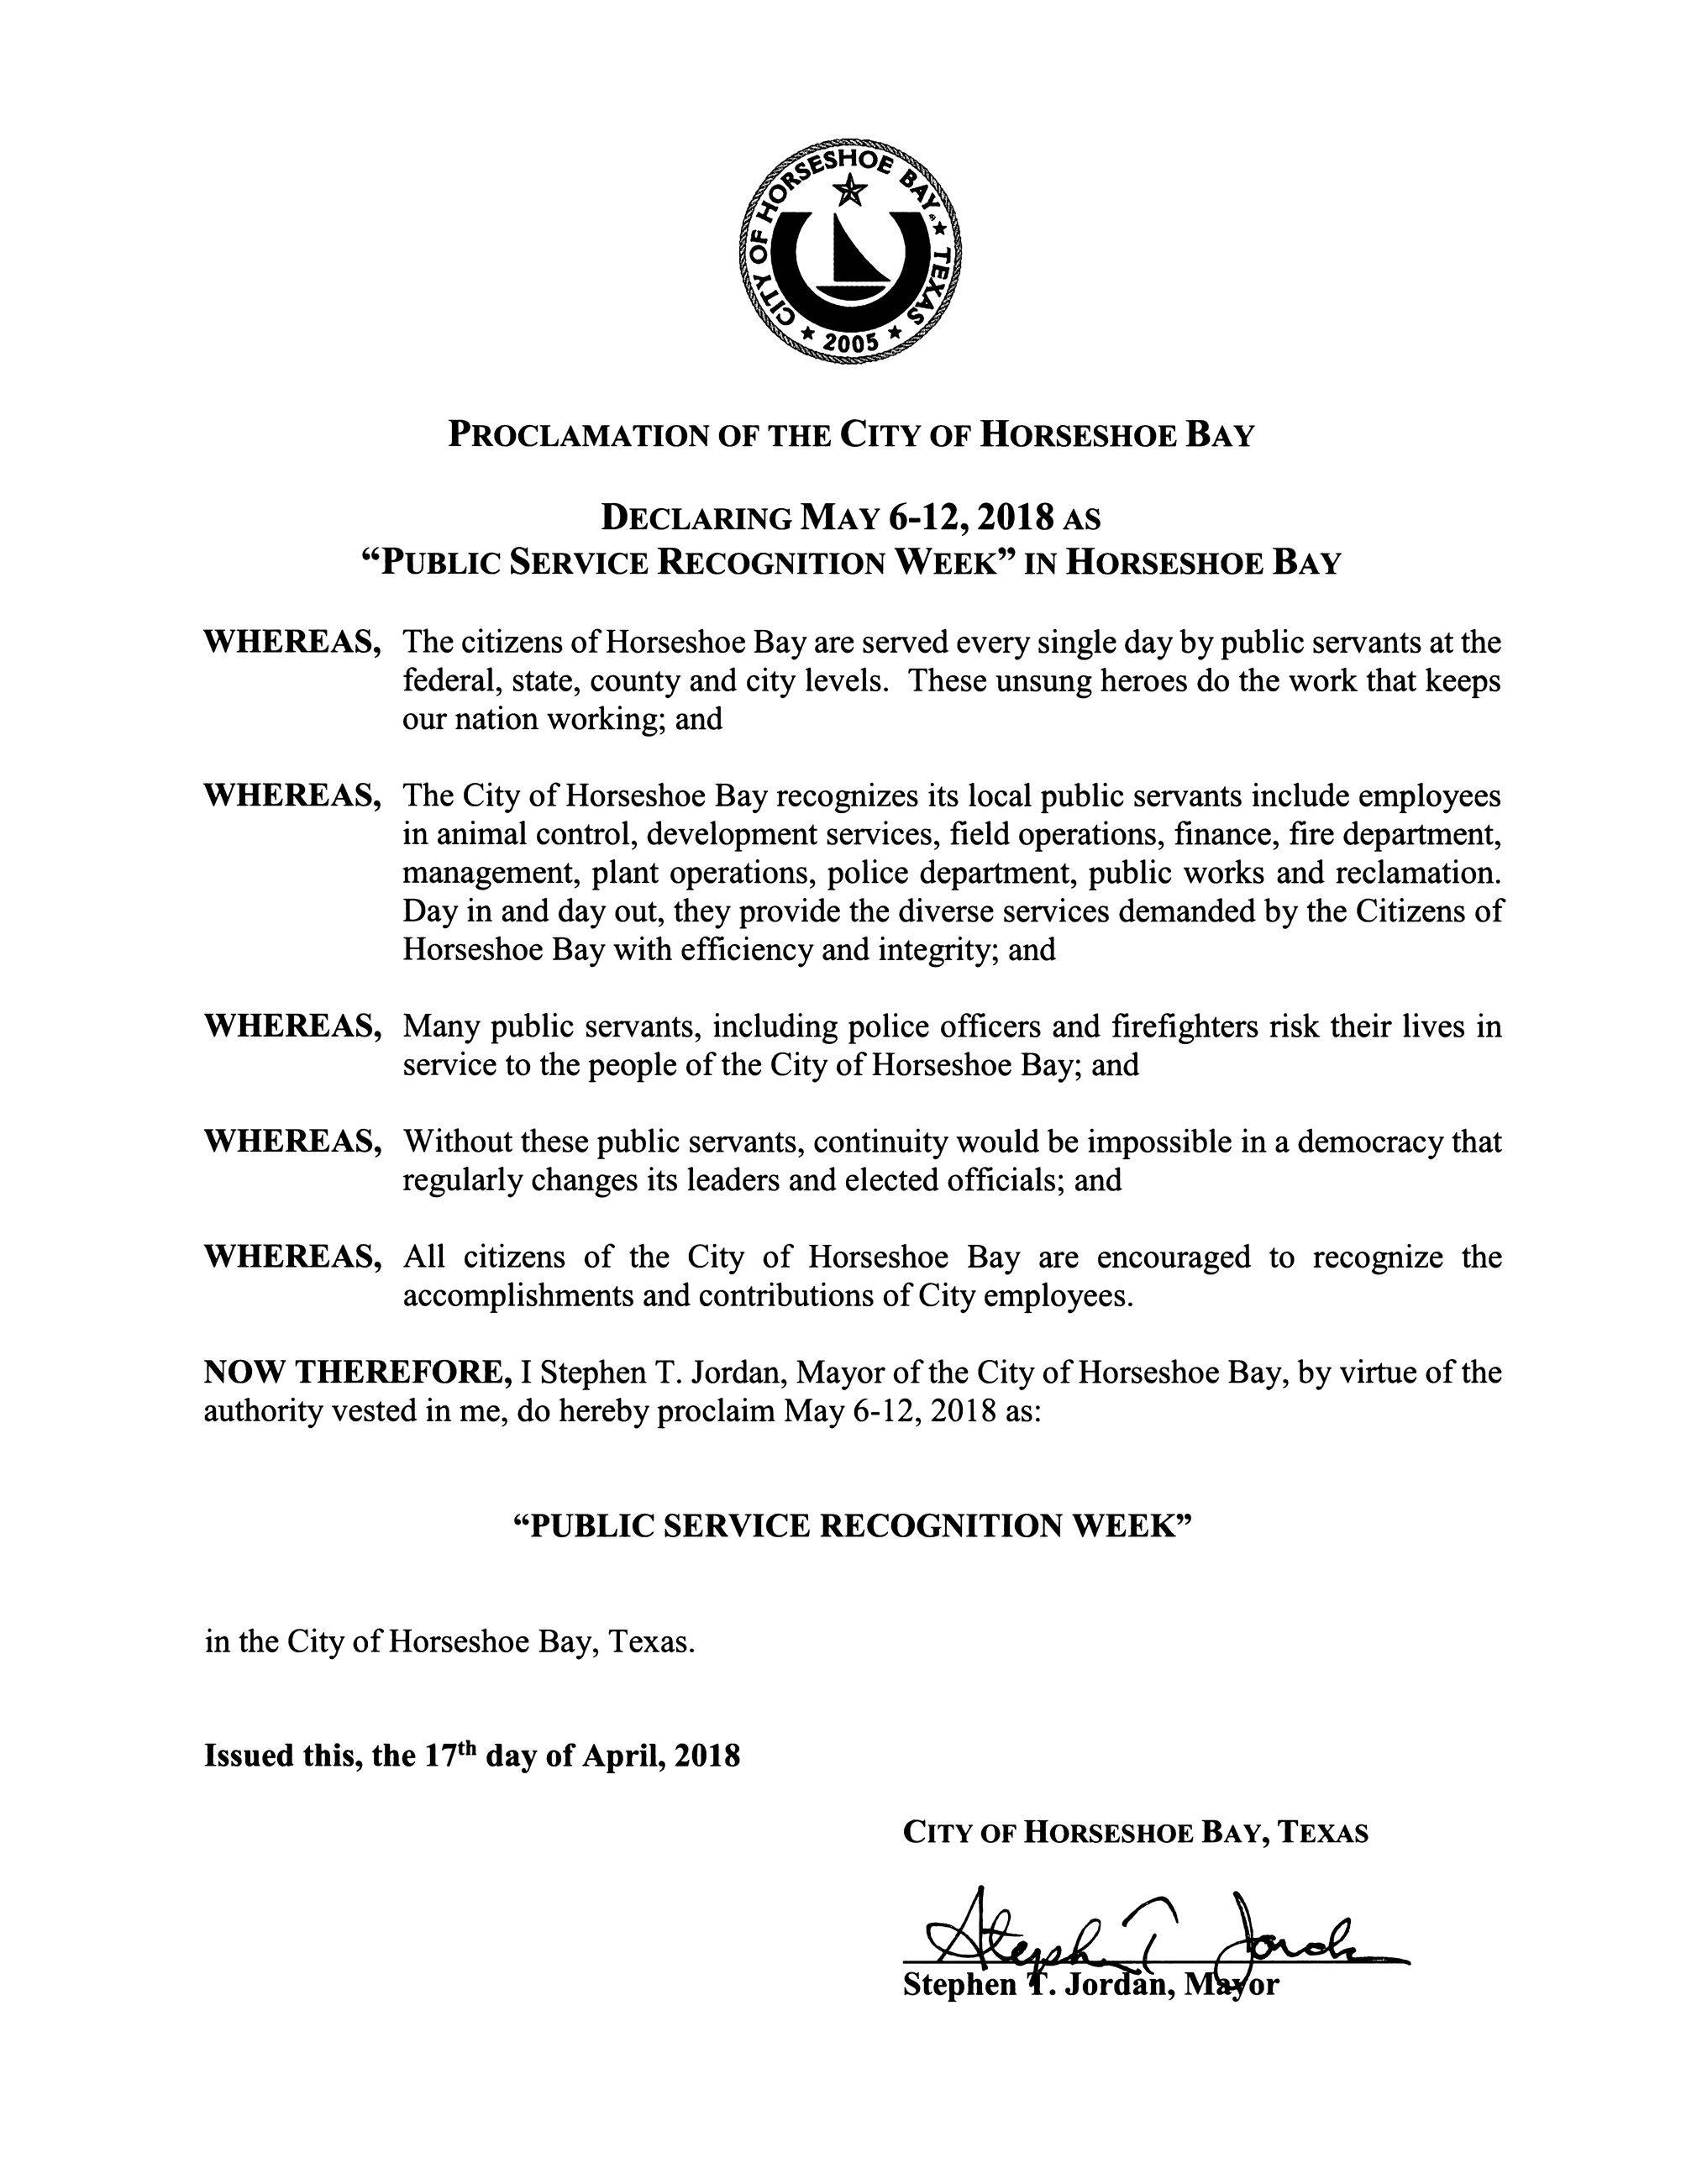 2018 May 6-12 Public Service Recognition Week 04.17.2018